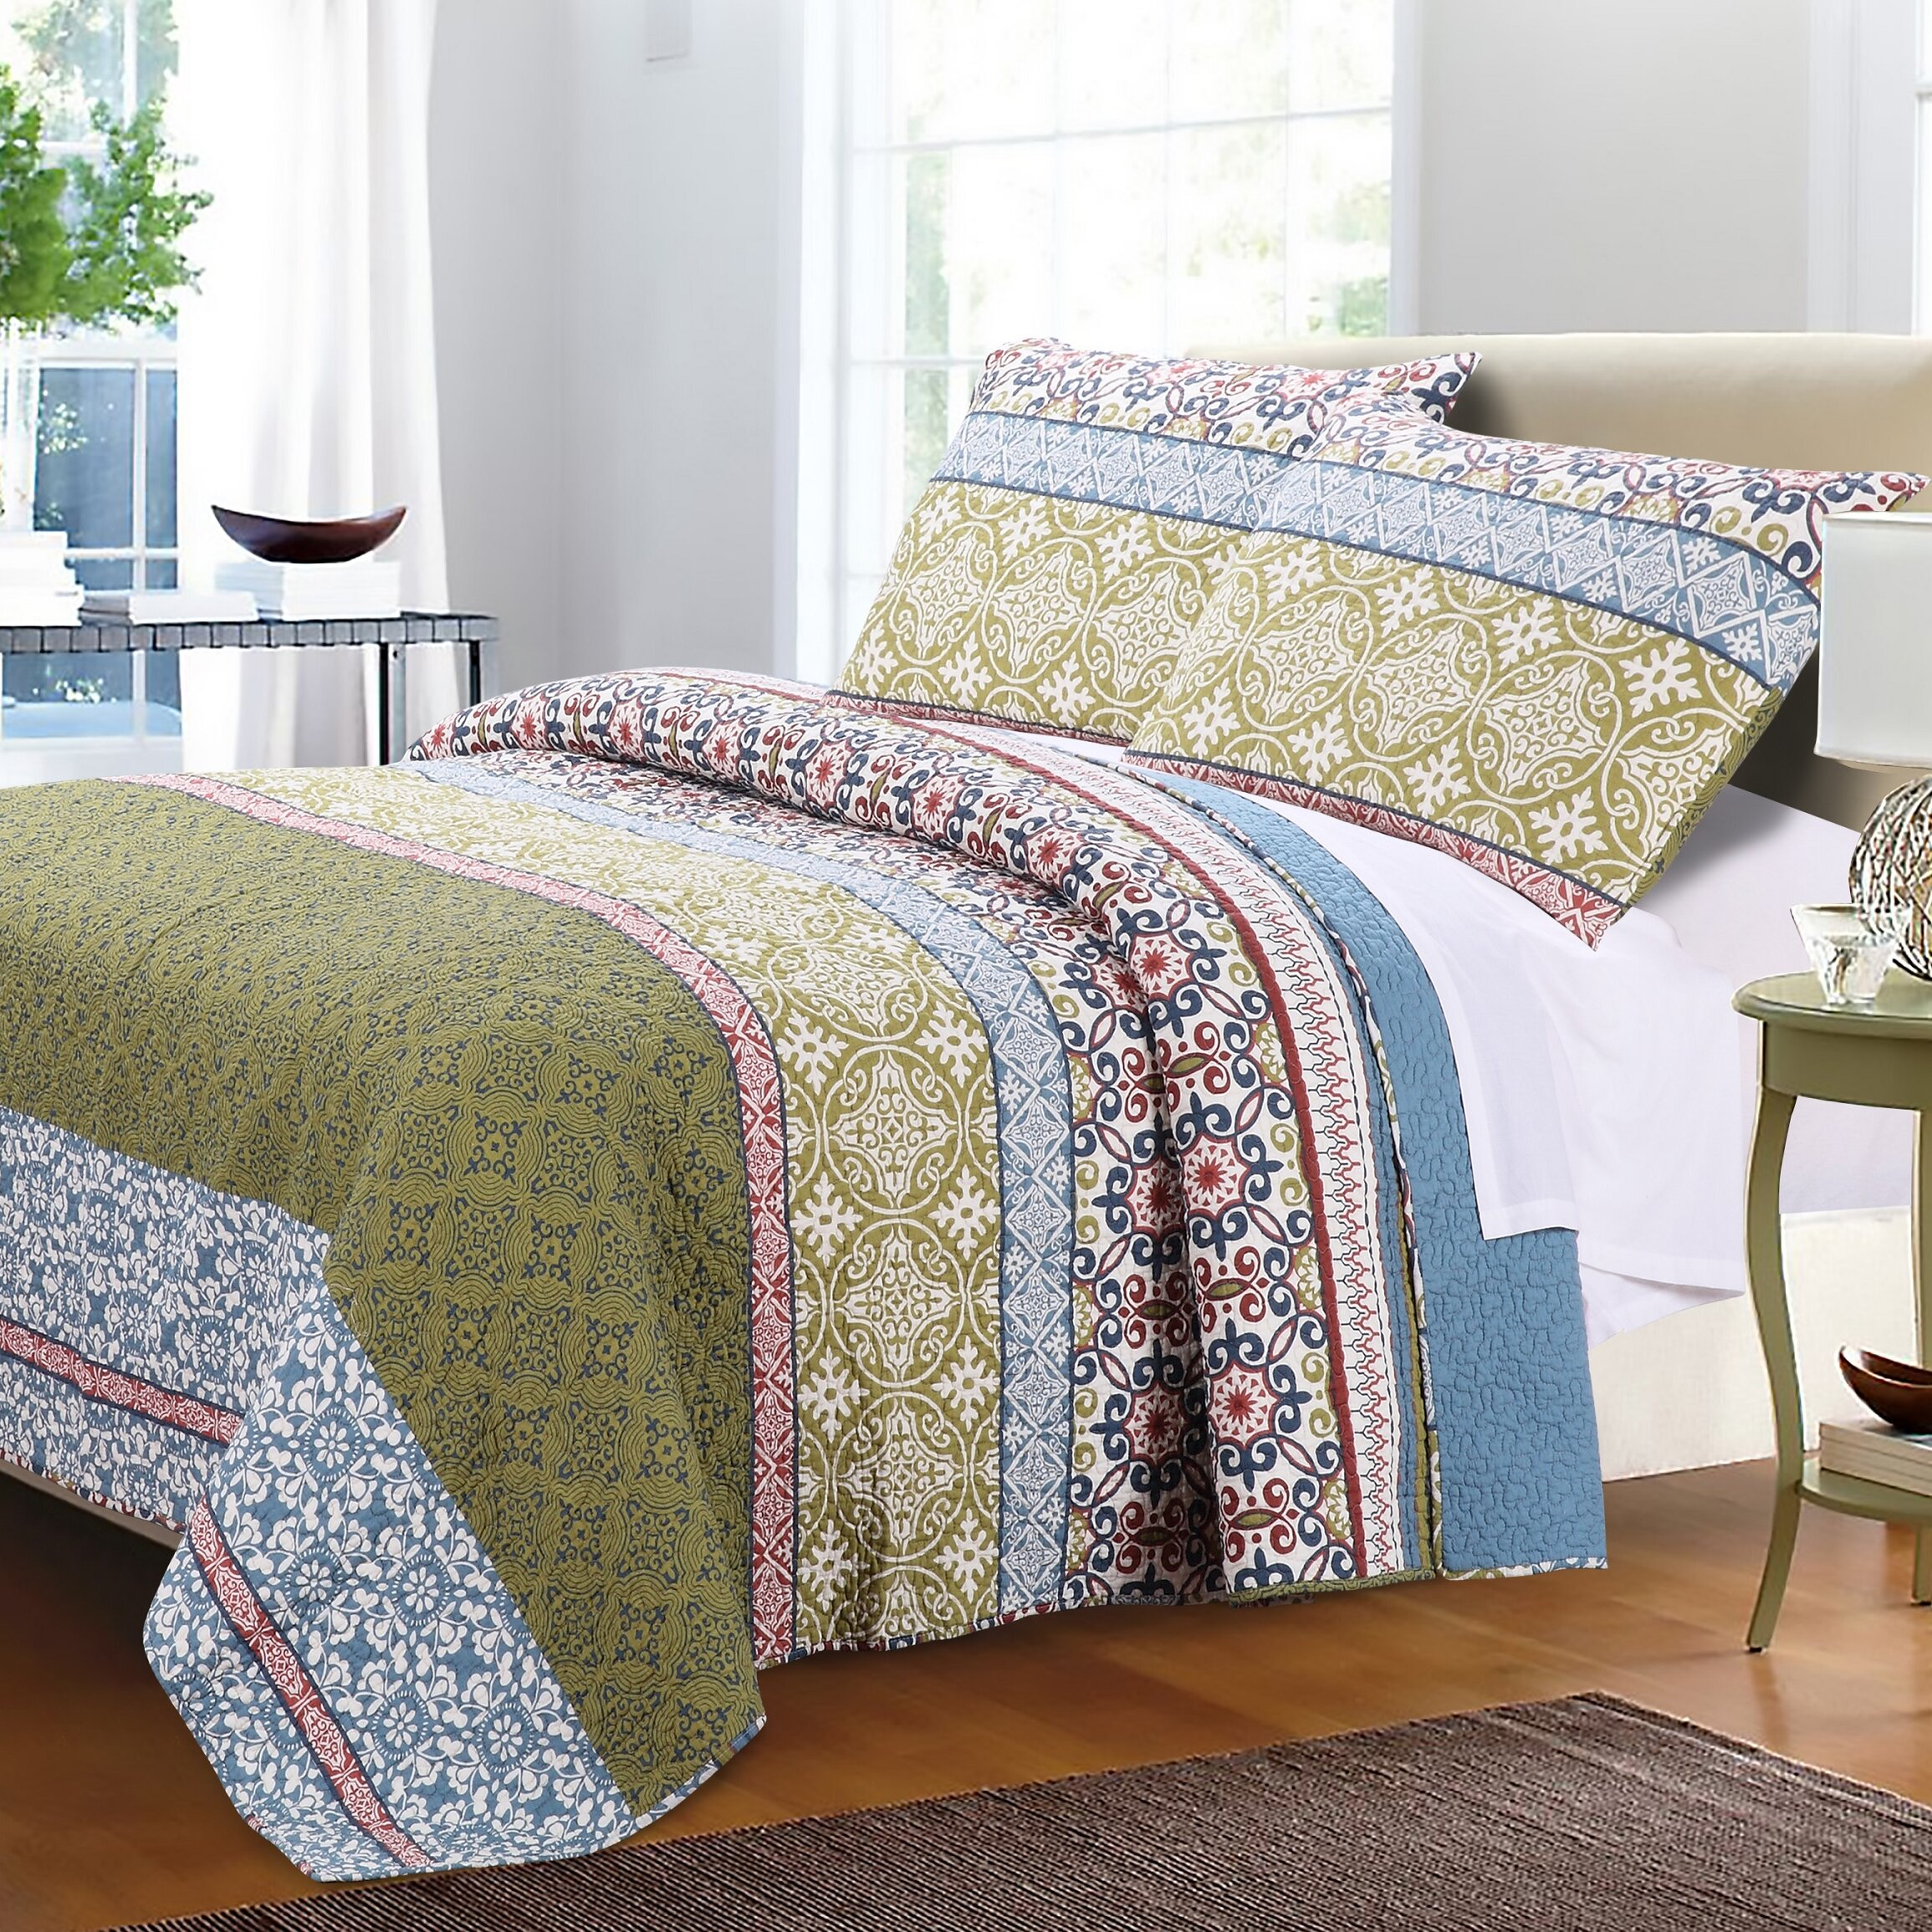 red bedding oriental product quilt floral cotton set cherry japanese branches cover style print duvet blossom